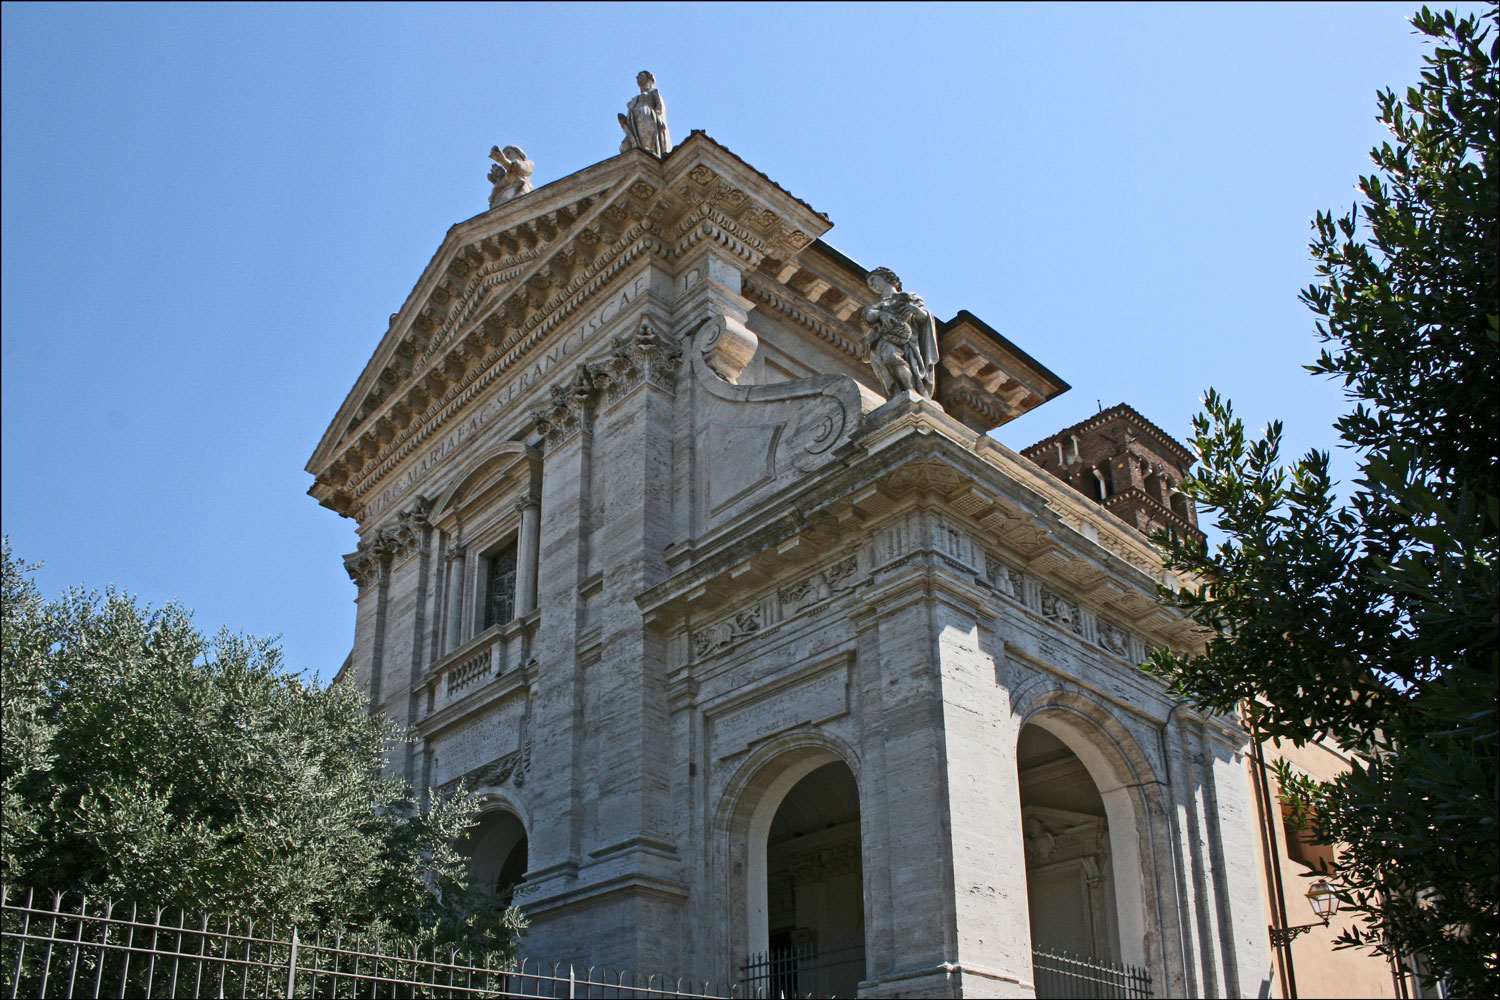 Church of Santa Francesca Romana